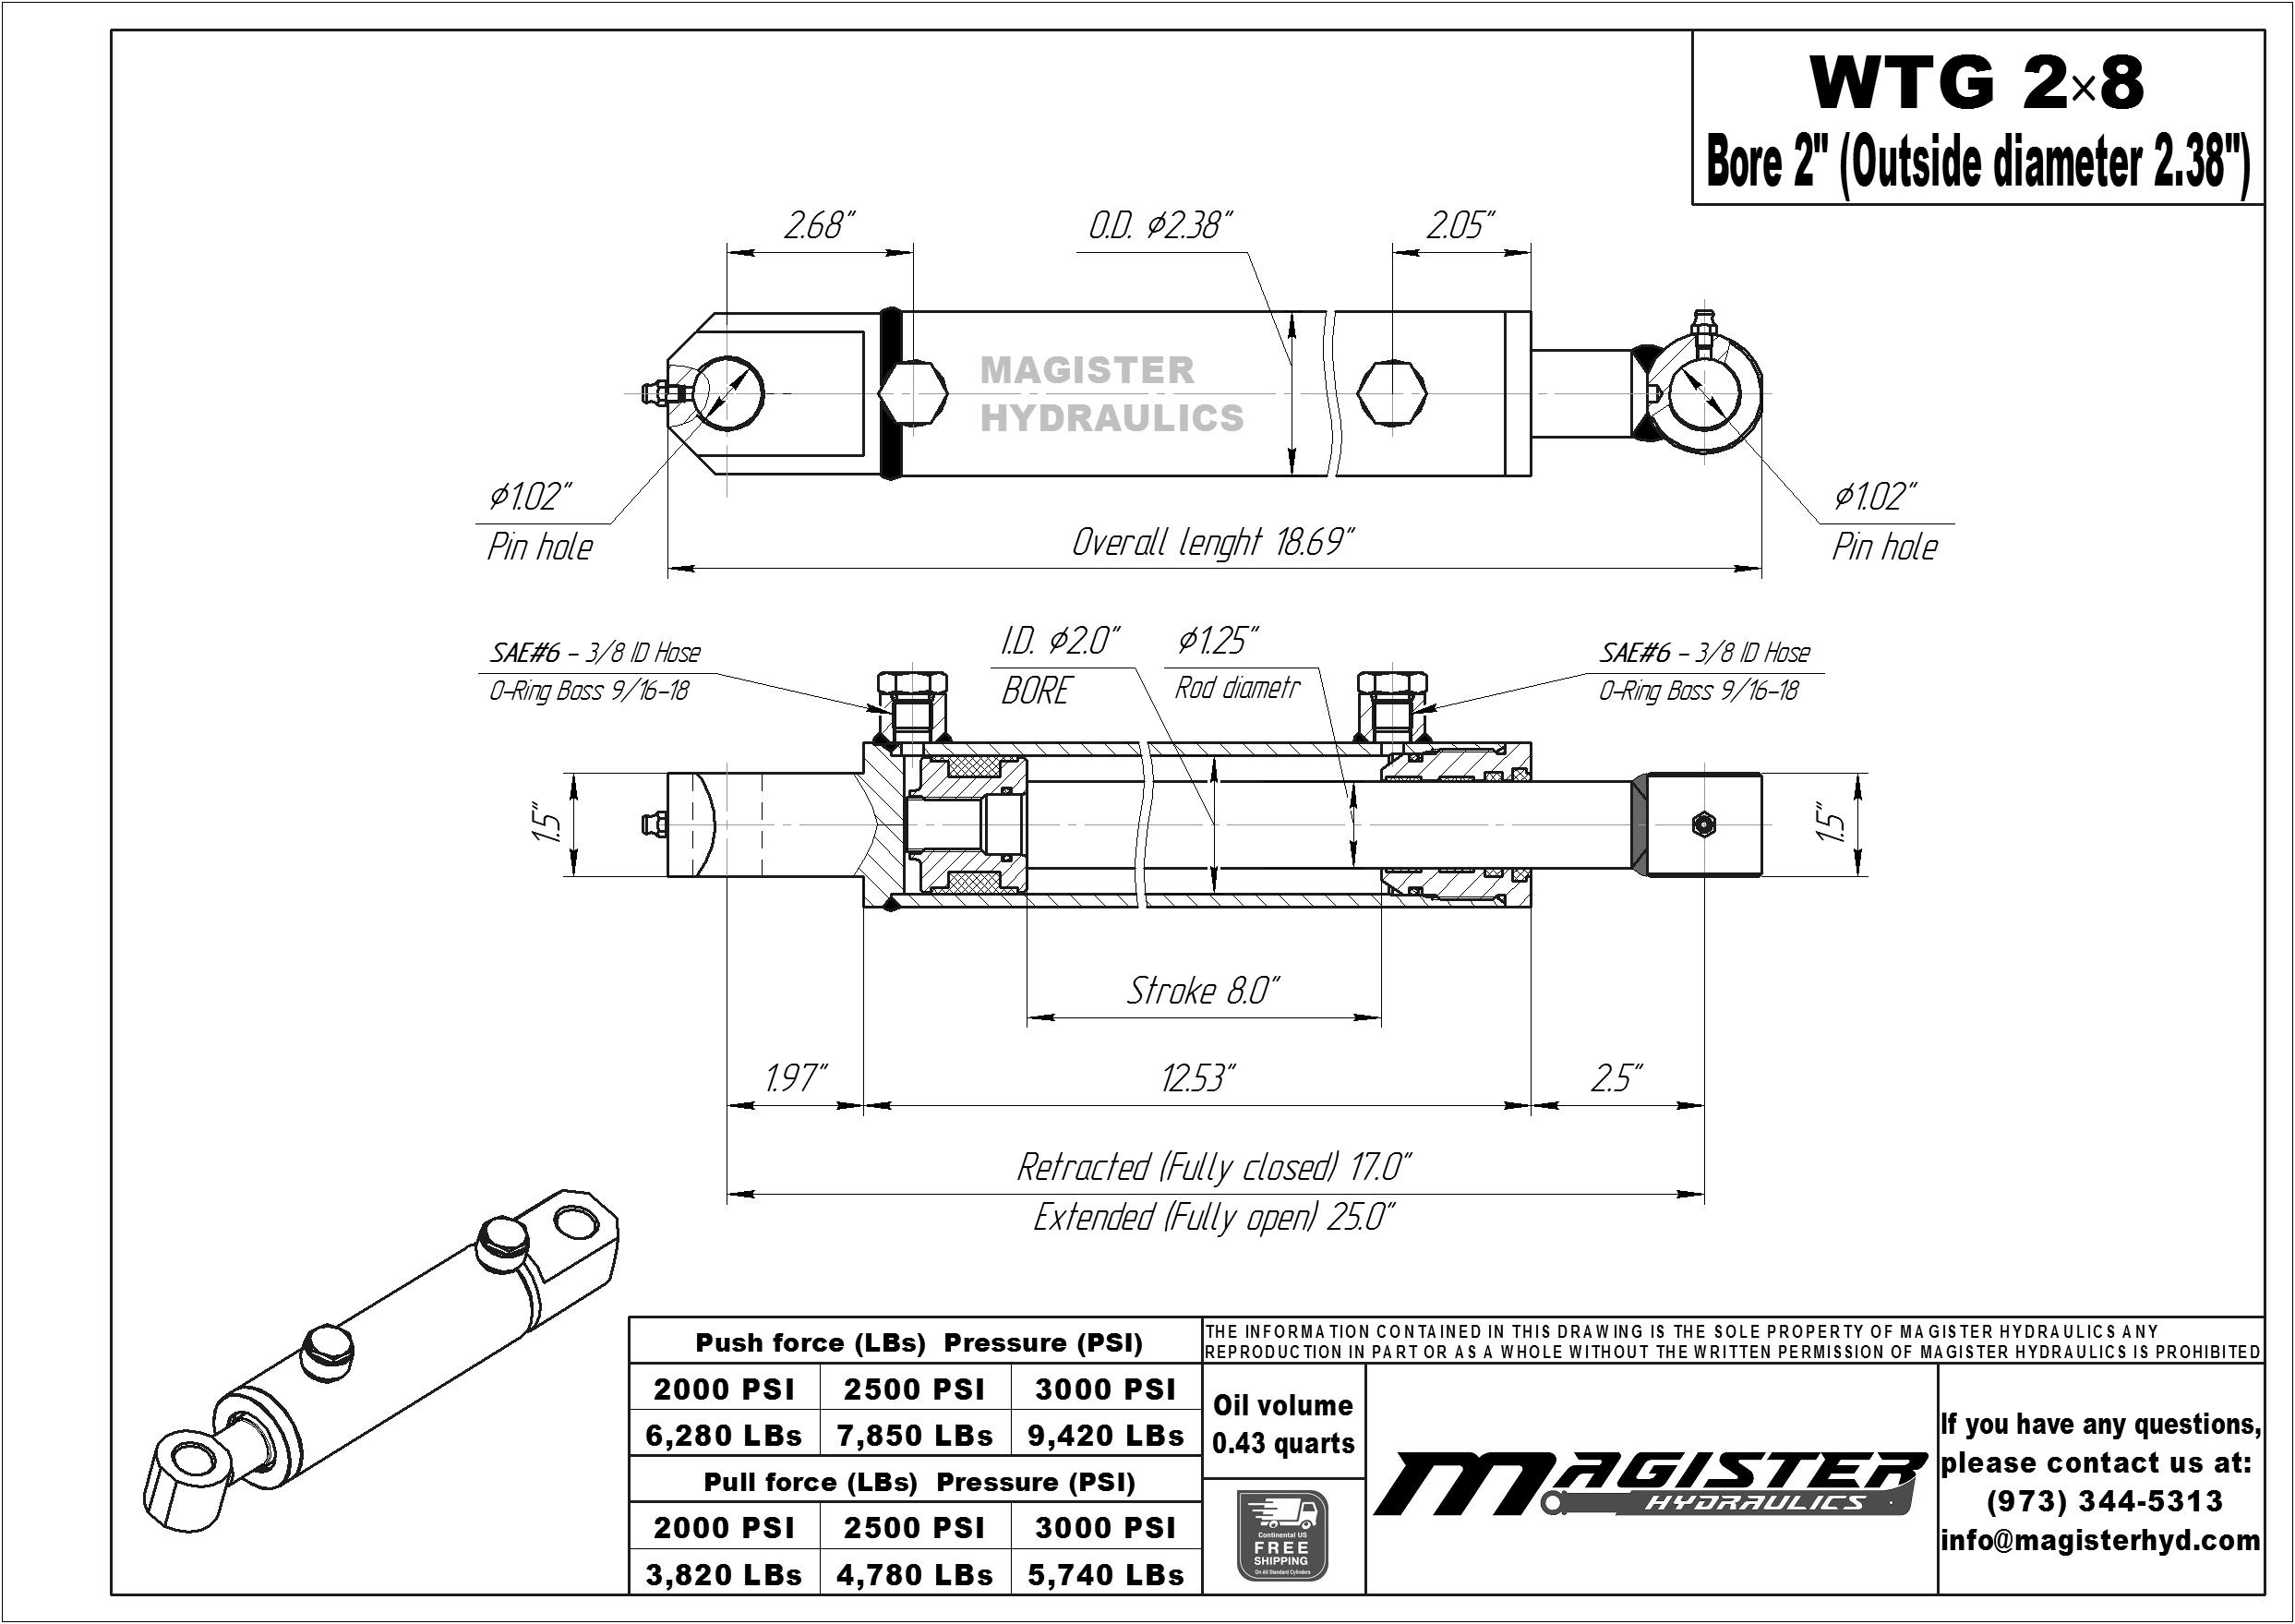 2 bore x 8 stroke hydraulic cylinder, welded tang double acting cylinder   Magister Hydraulics